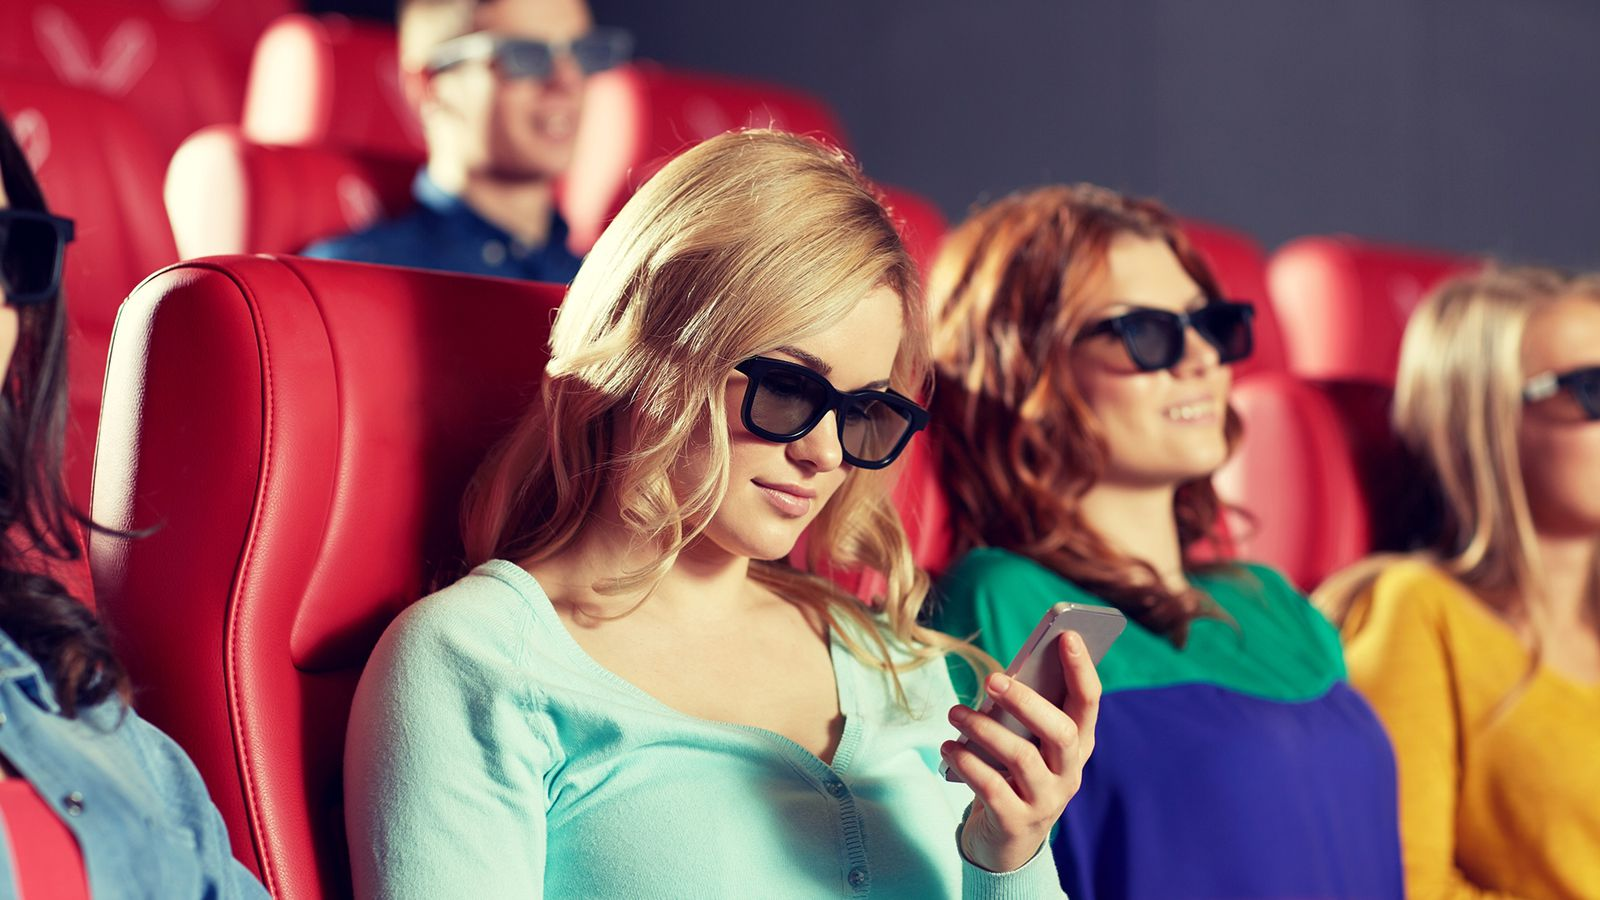 amc theatres may allow cellphone use during movies in